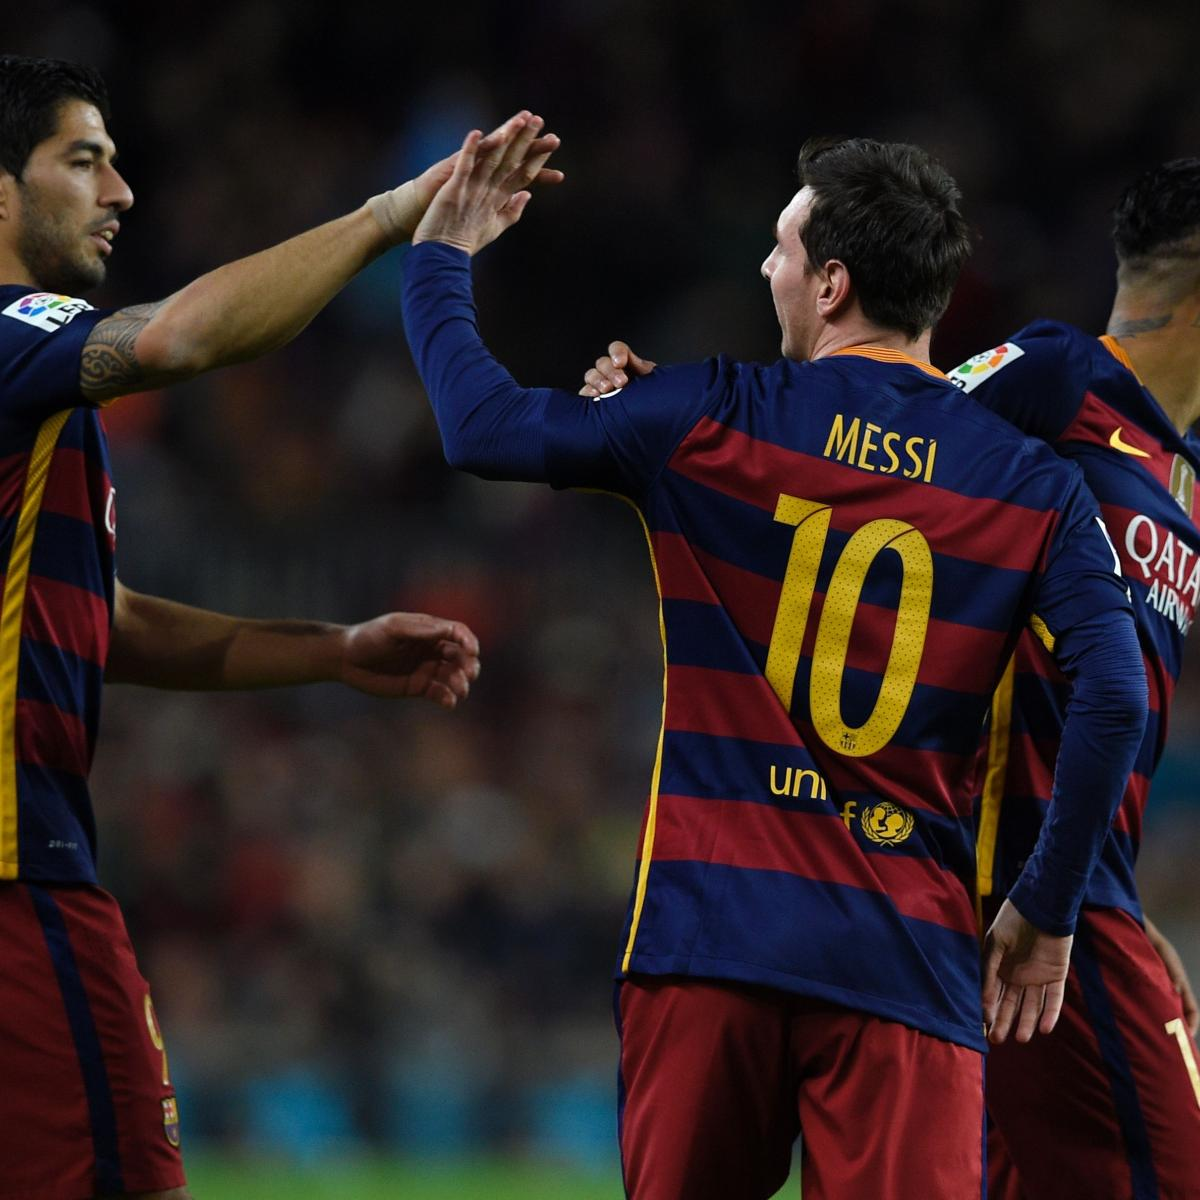 Celta Vigo Vs Barcelona Direct: Barcelona Vs. Celta Vigo: Live Score, Highlights From La